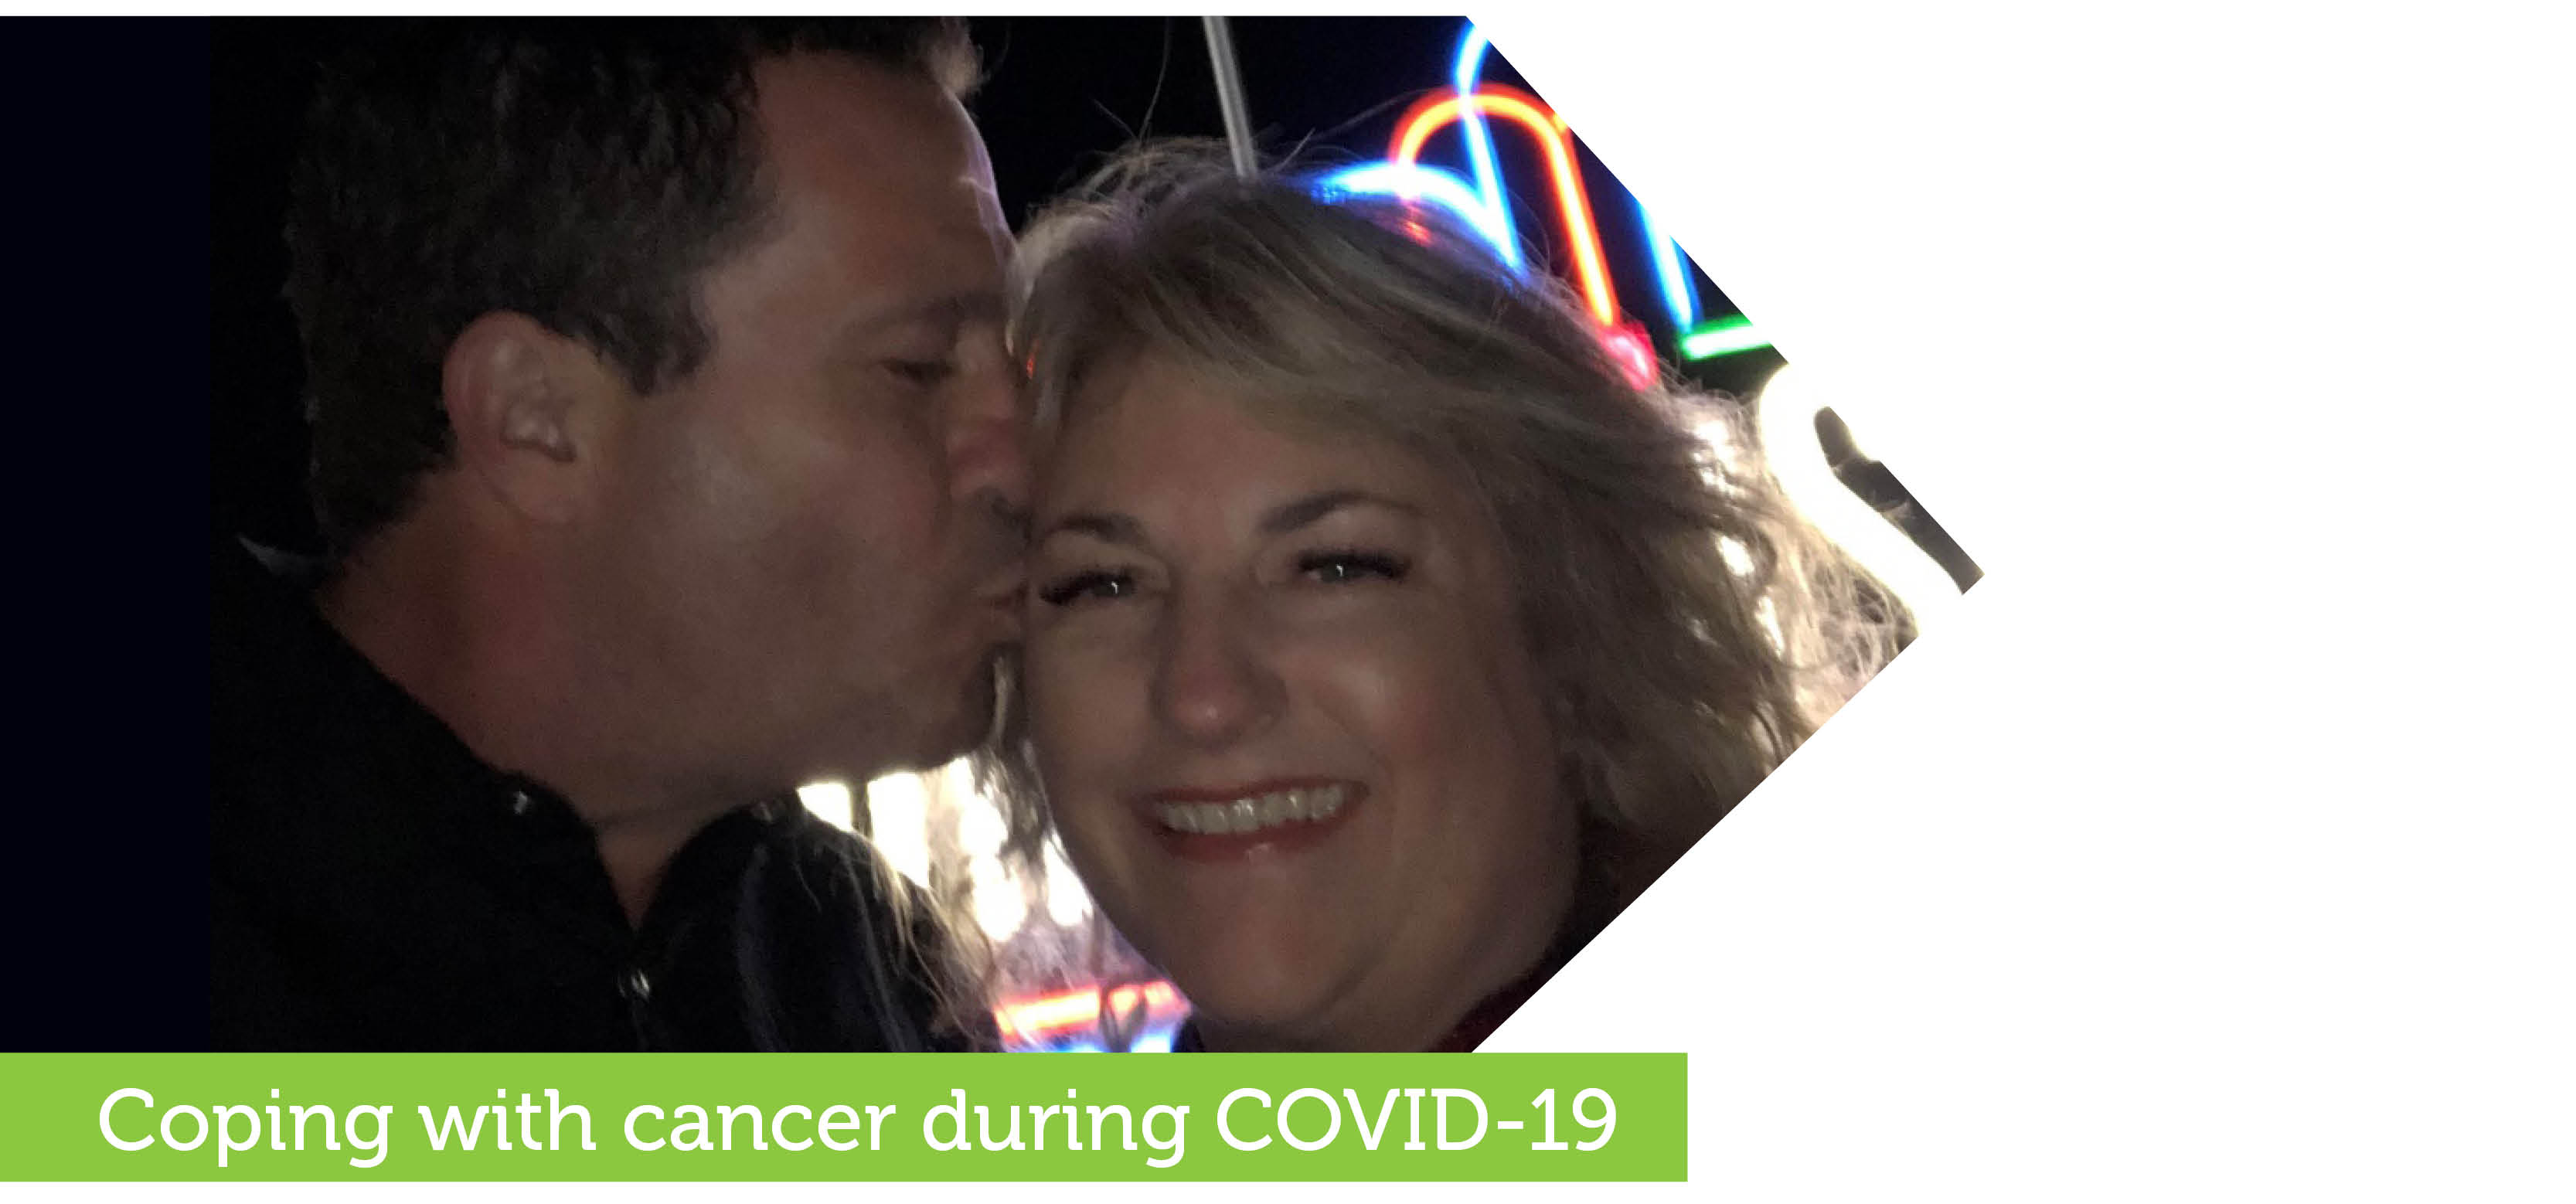 Cancer diagnosis during COVID-19